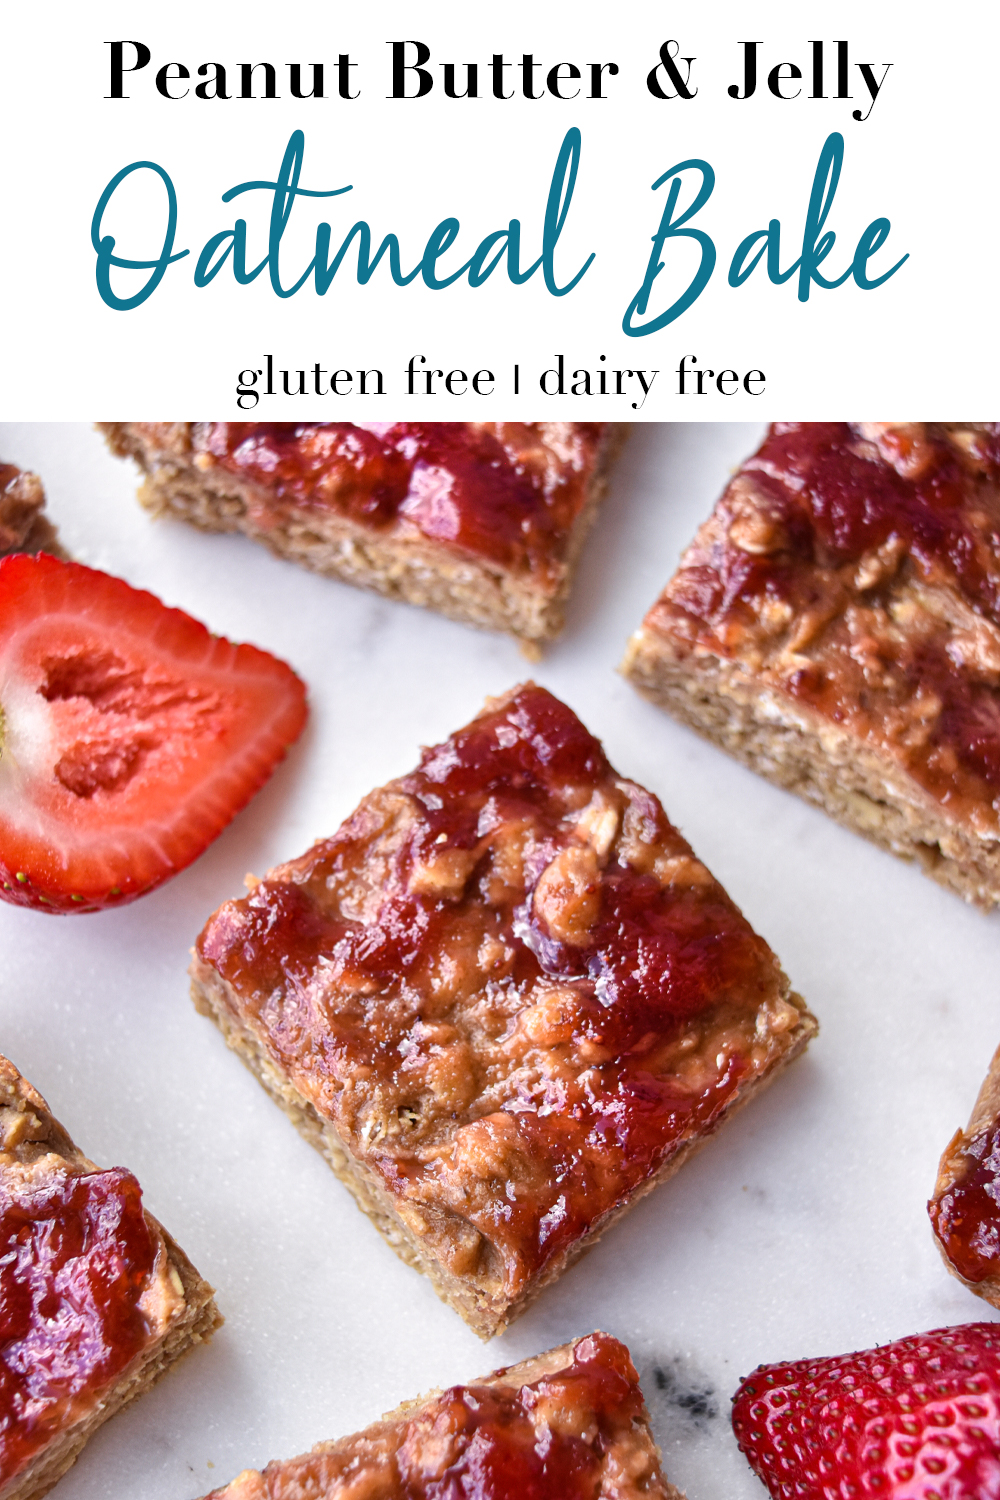 Peanut Butter & Jelly Oatmeal Bake pin